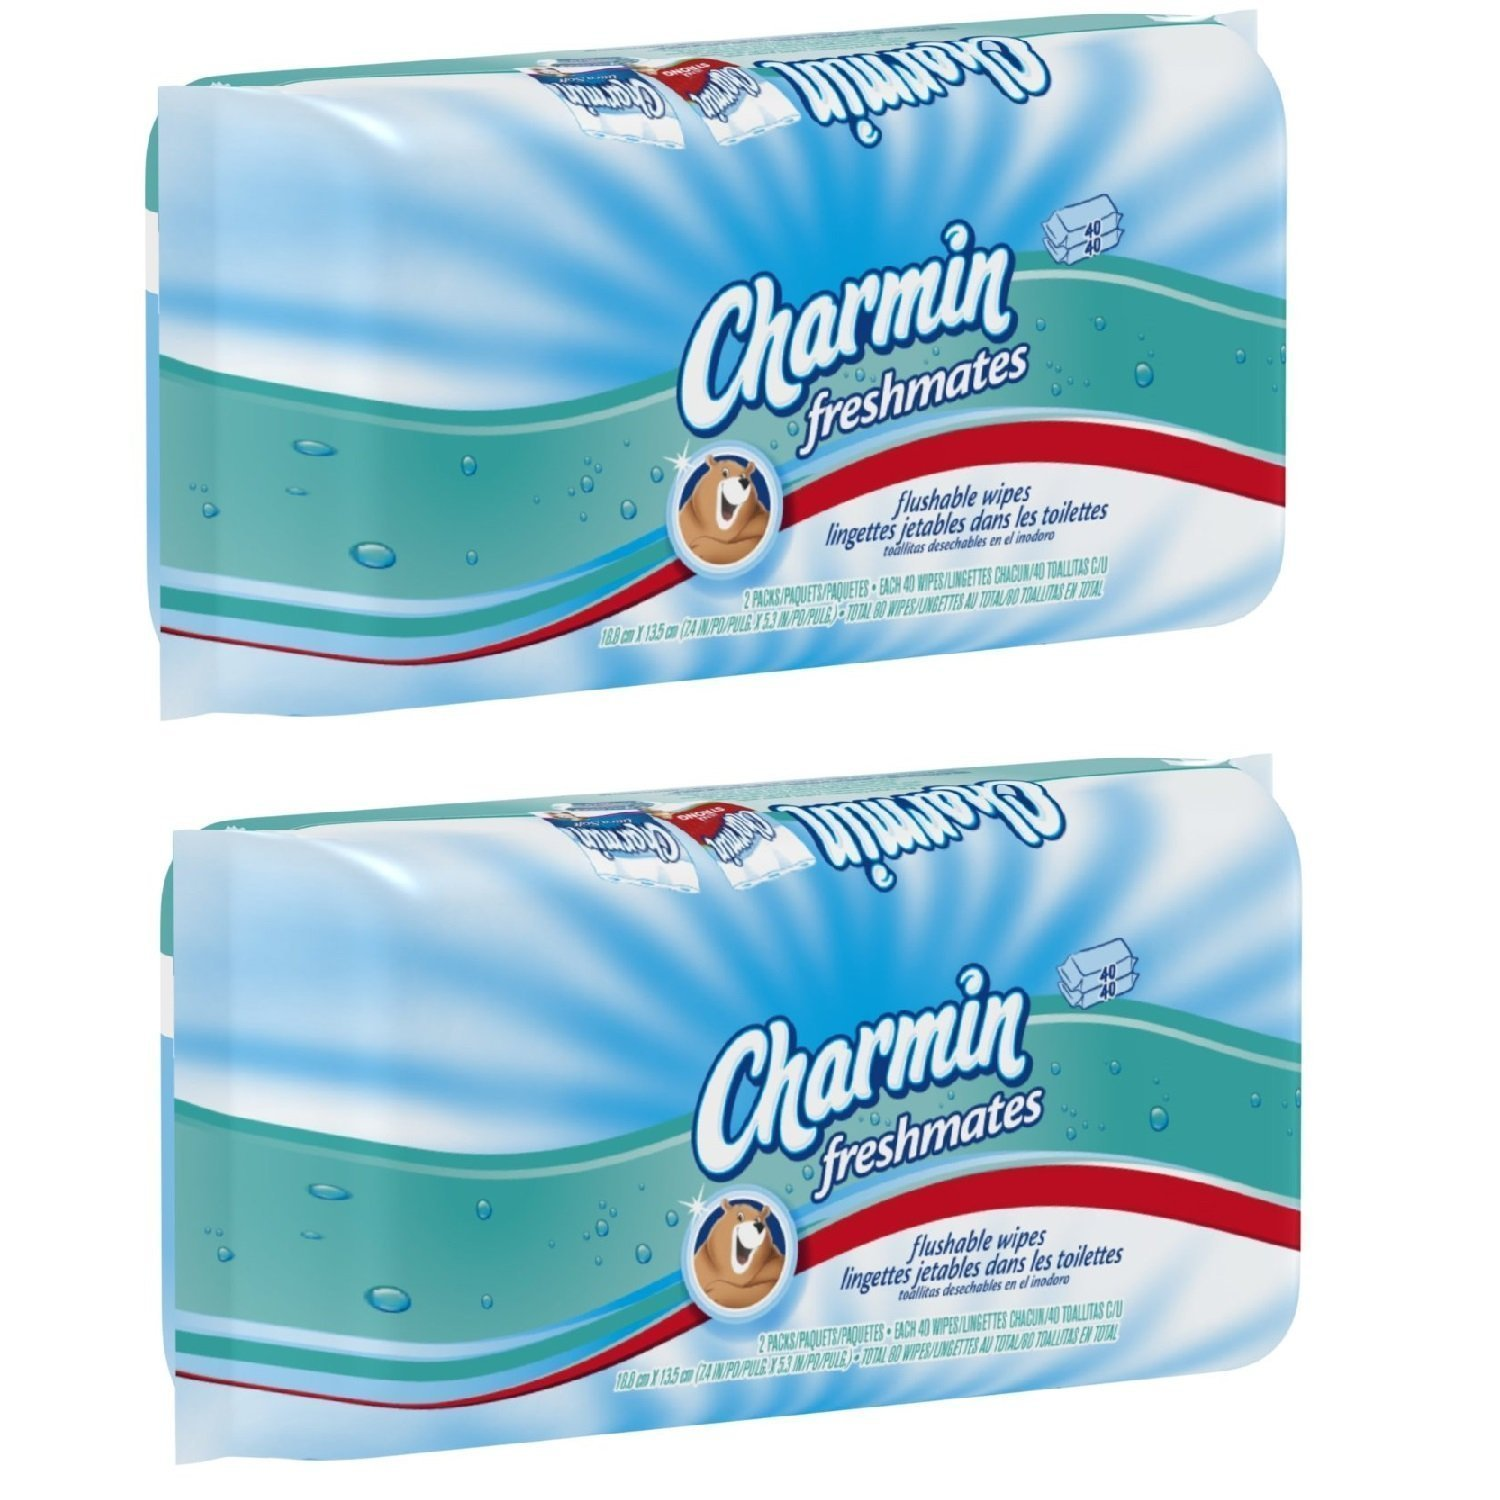 Amazon.com: Charmin Freshmates Flushable Wipes - 160 ct: Health & Personal Care